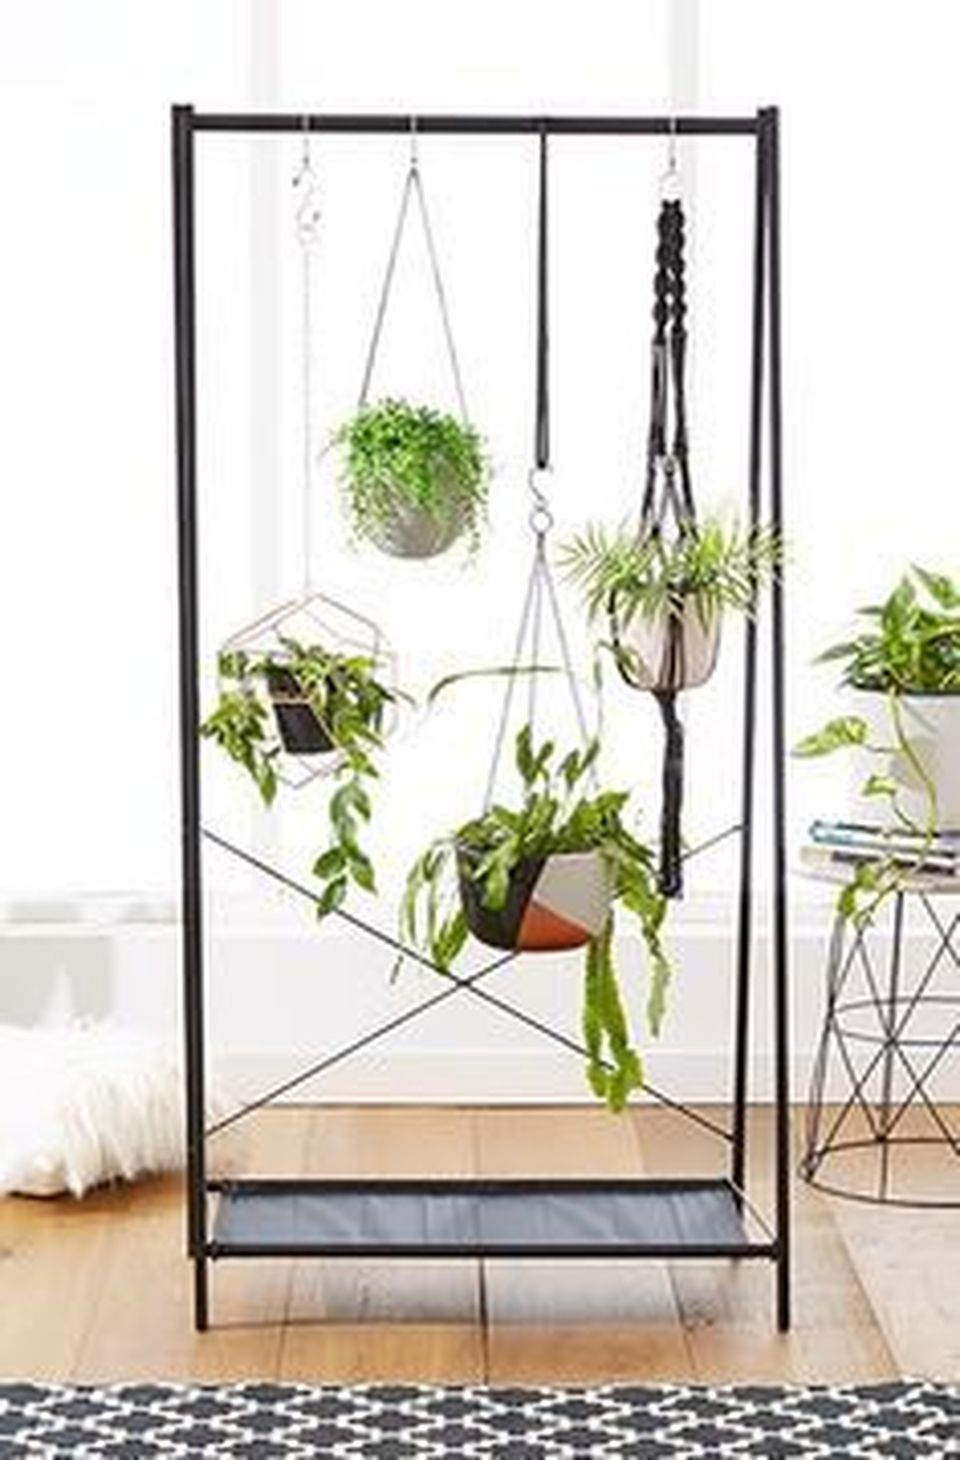 Cool Plant Stand Design Ideas for Indoor Houseplant ... on Hanging Plants Stand Design  id=47118